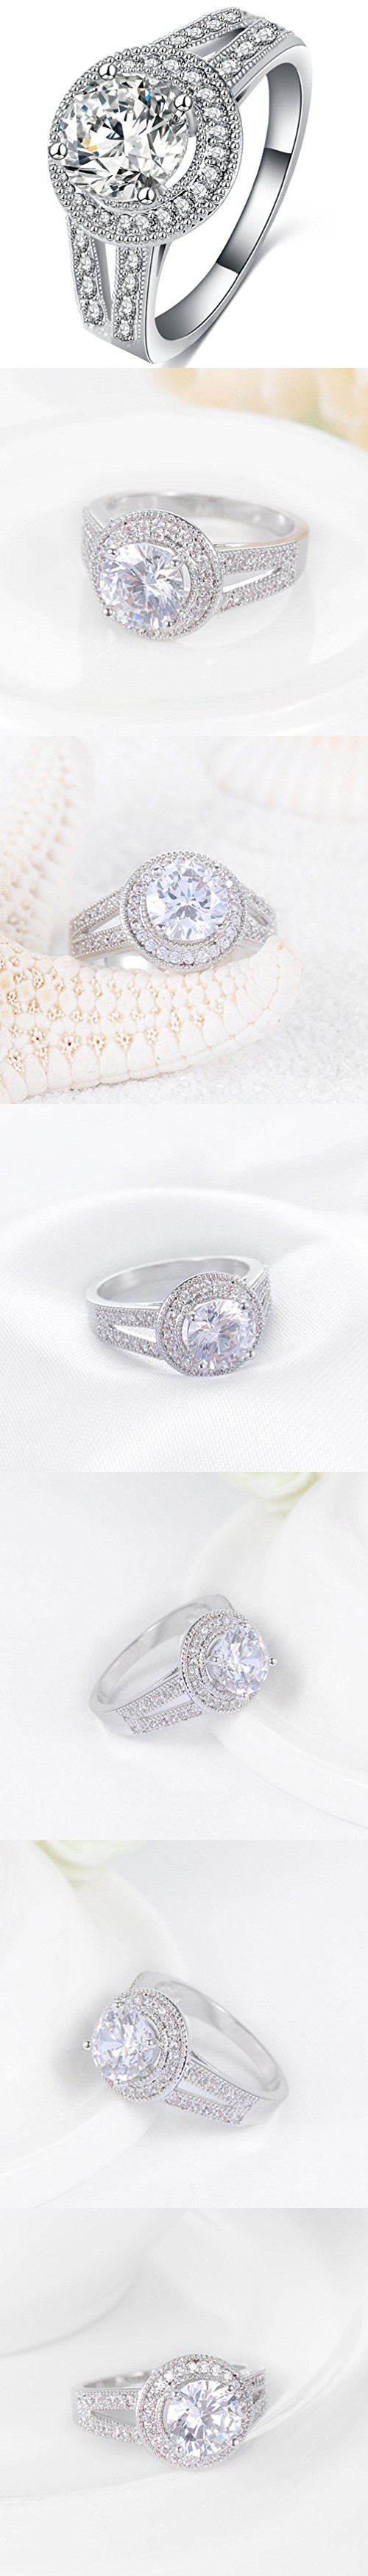 hancocks diamond bands jewellers engagement for view details and cluster bridal ring sapphire jewellery her